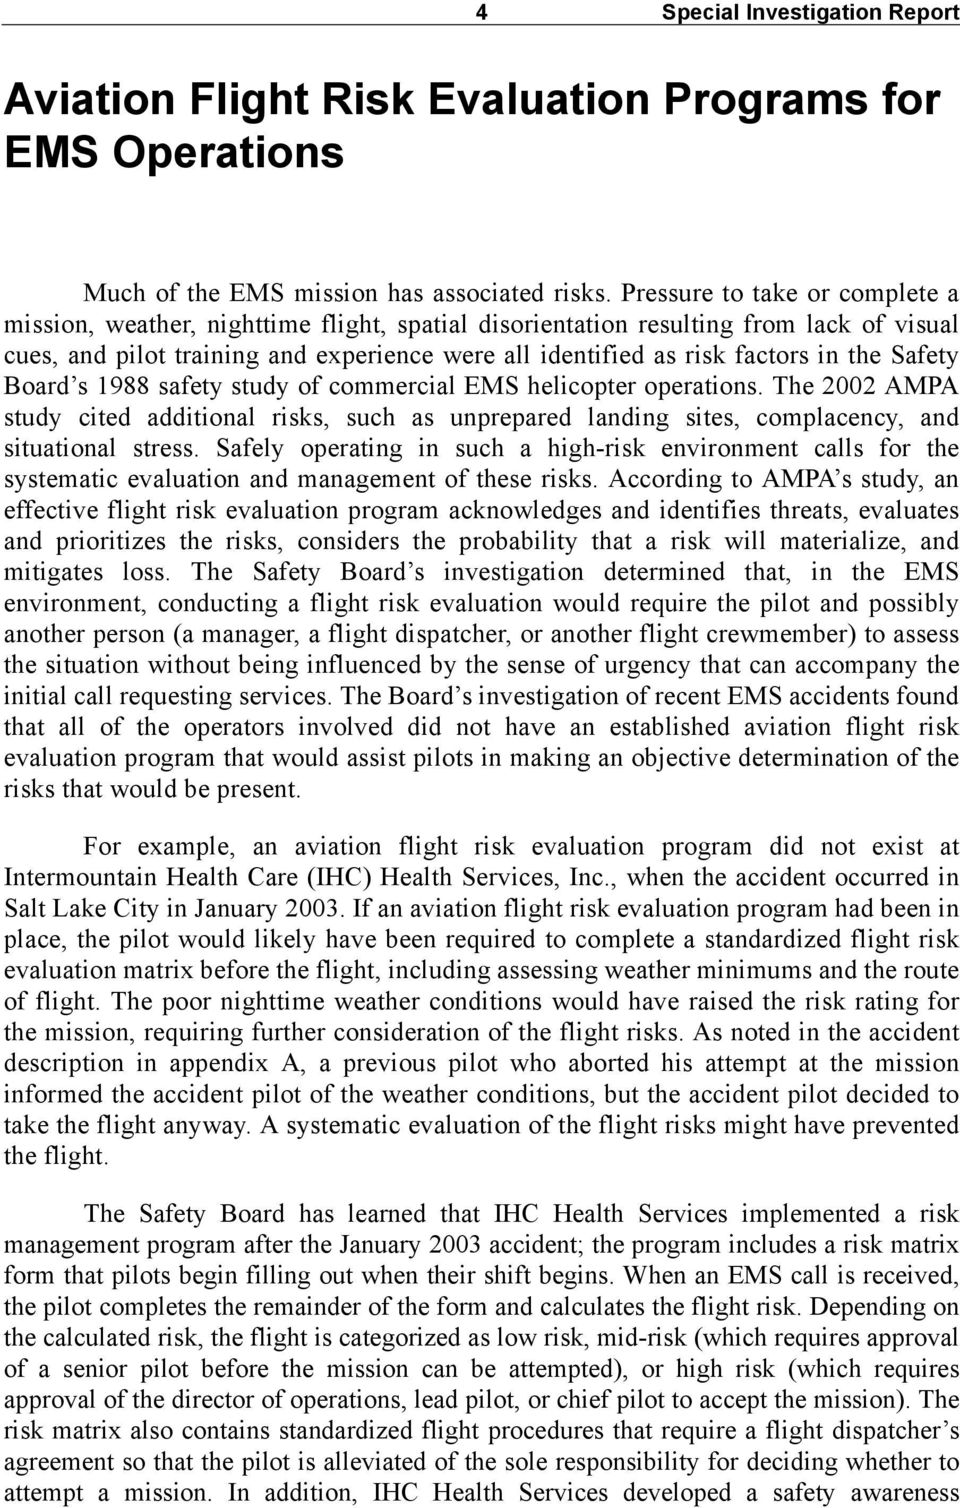 the Safety Board s 1988 safety study of commercial EMS helicopter operations. The 2002 AMPA study cited additional risks, such as unprepared landing sites, complacency, and situational stress.